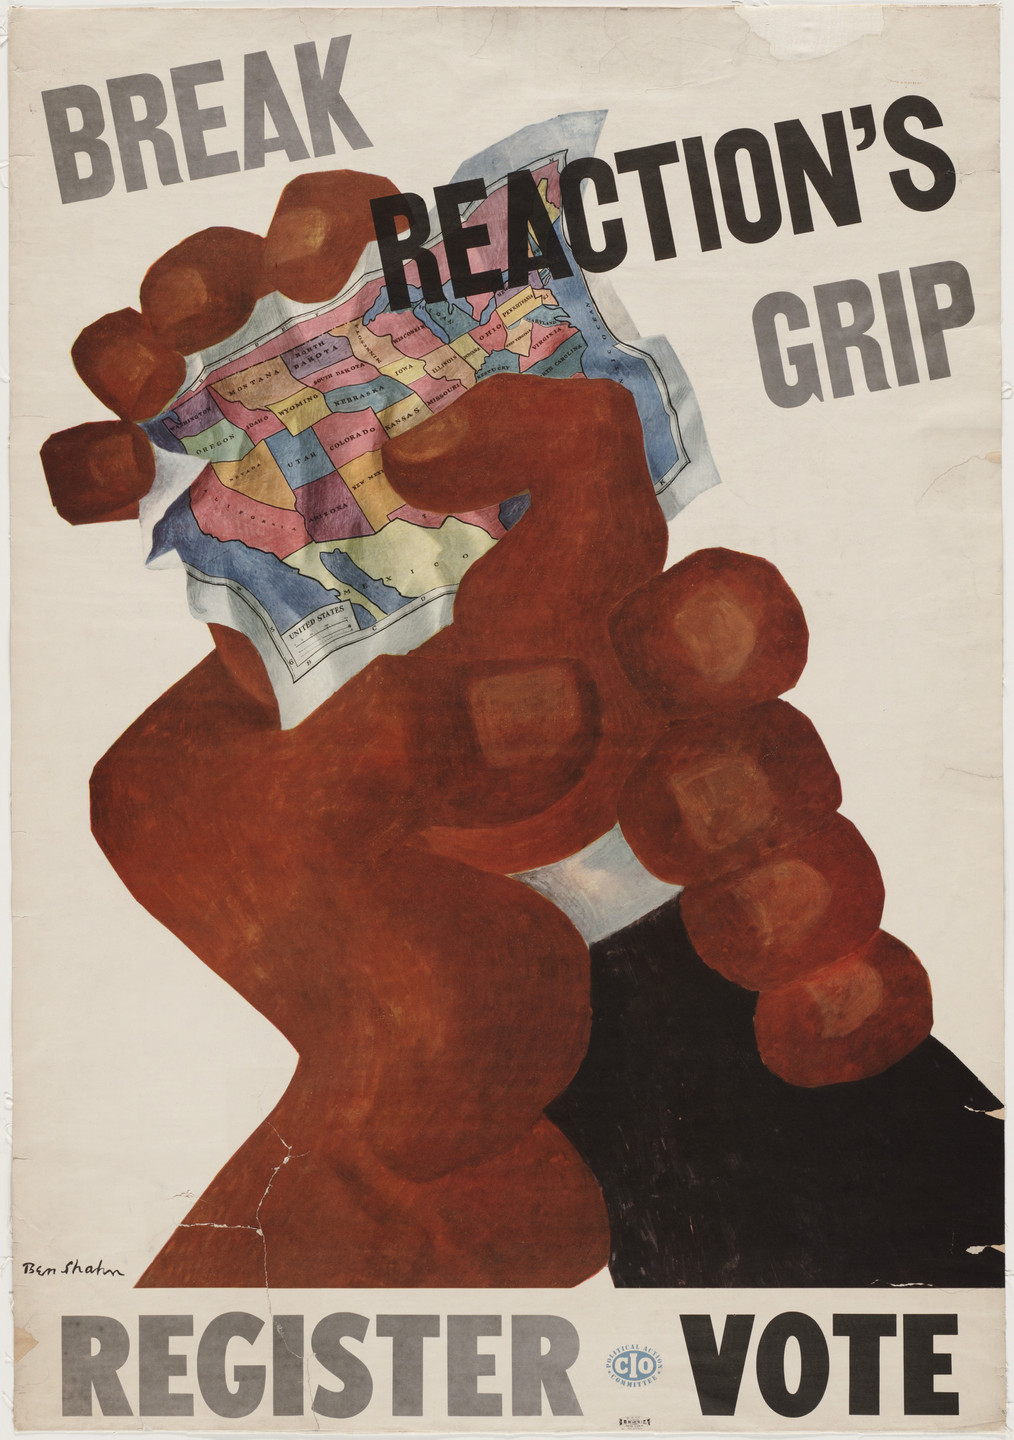 Ben Shahn. Break Reaction's Grip, Register, Vote. 1944